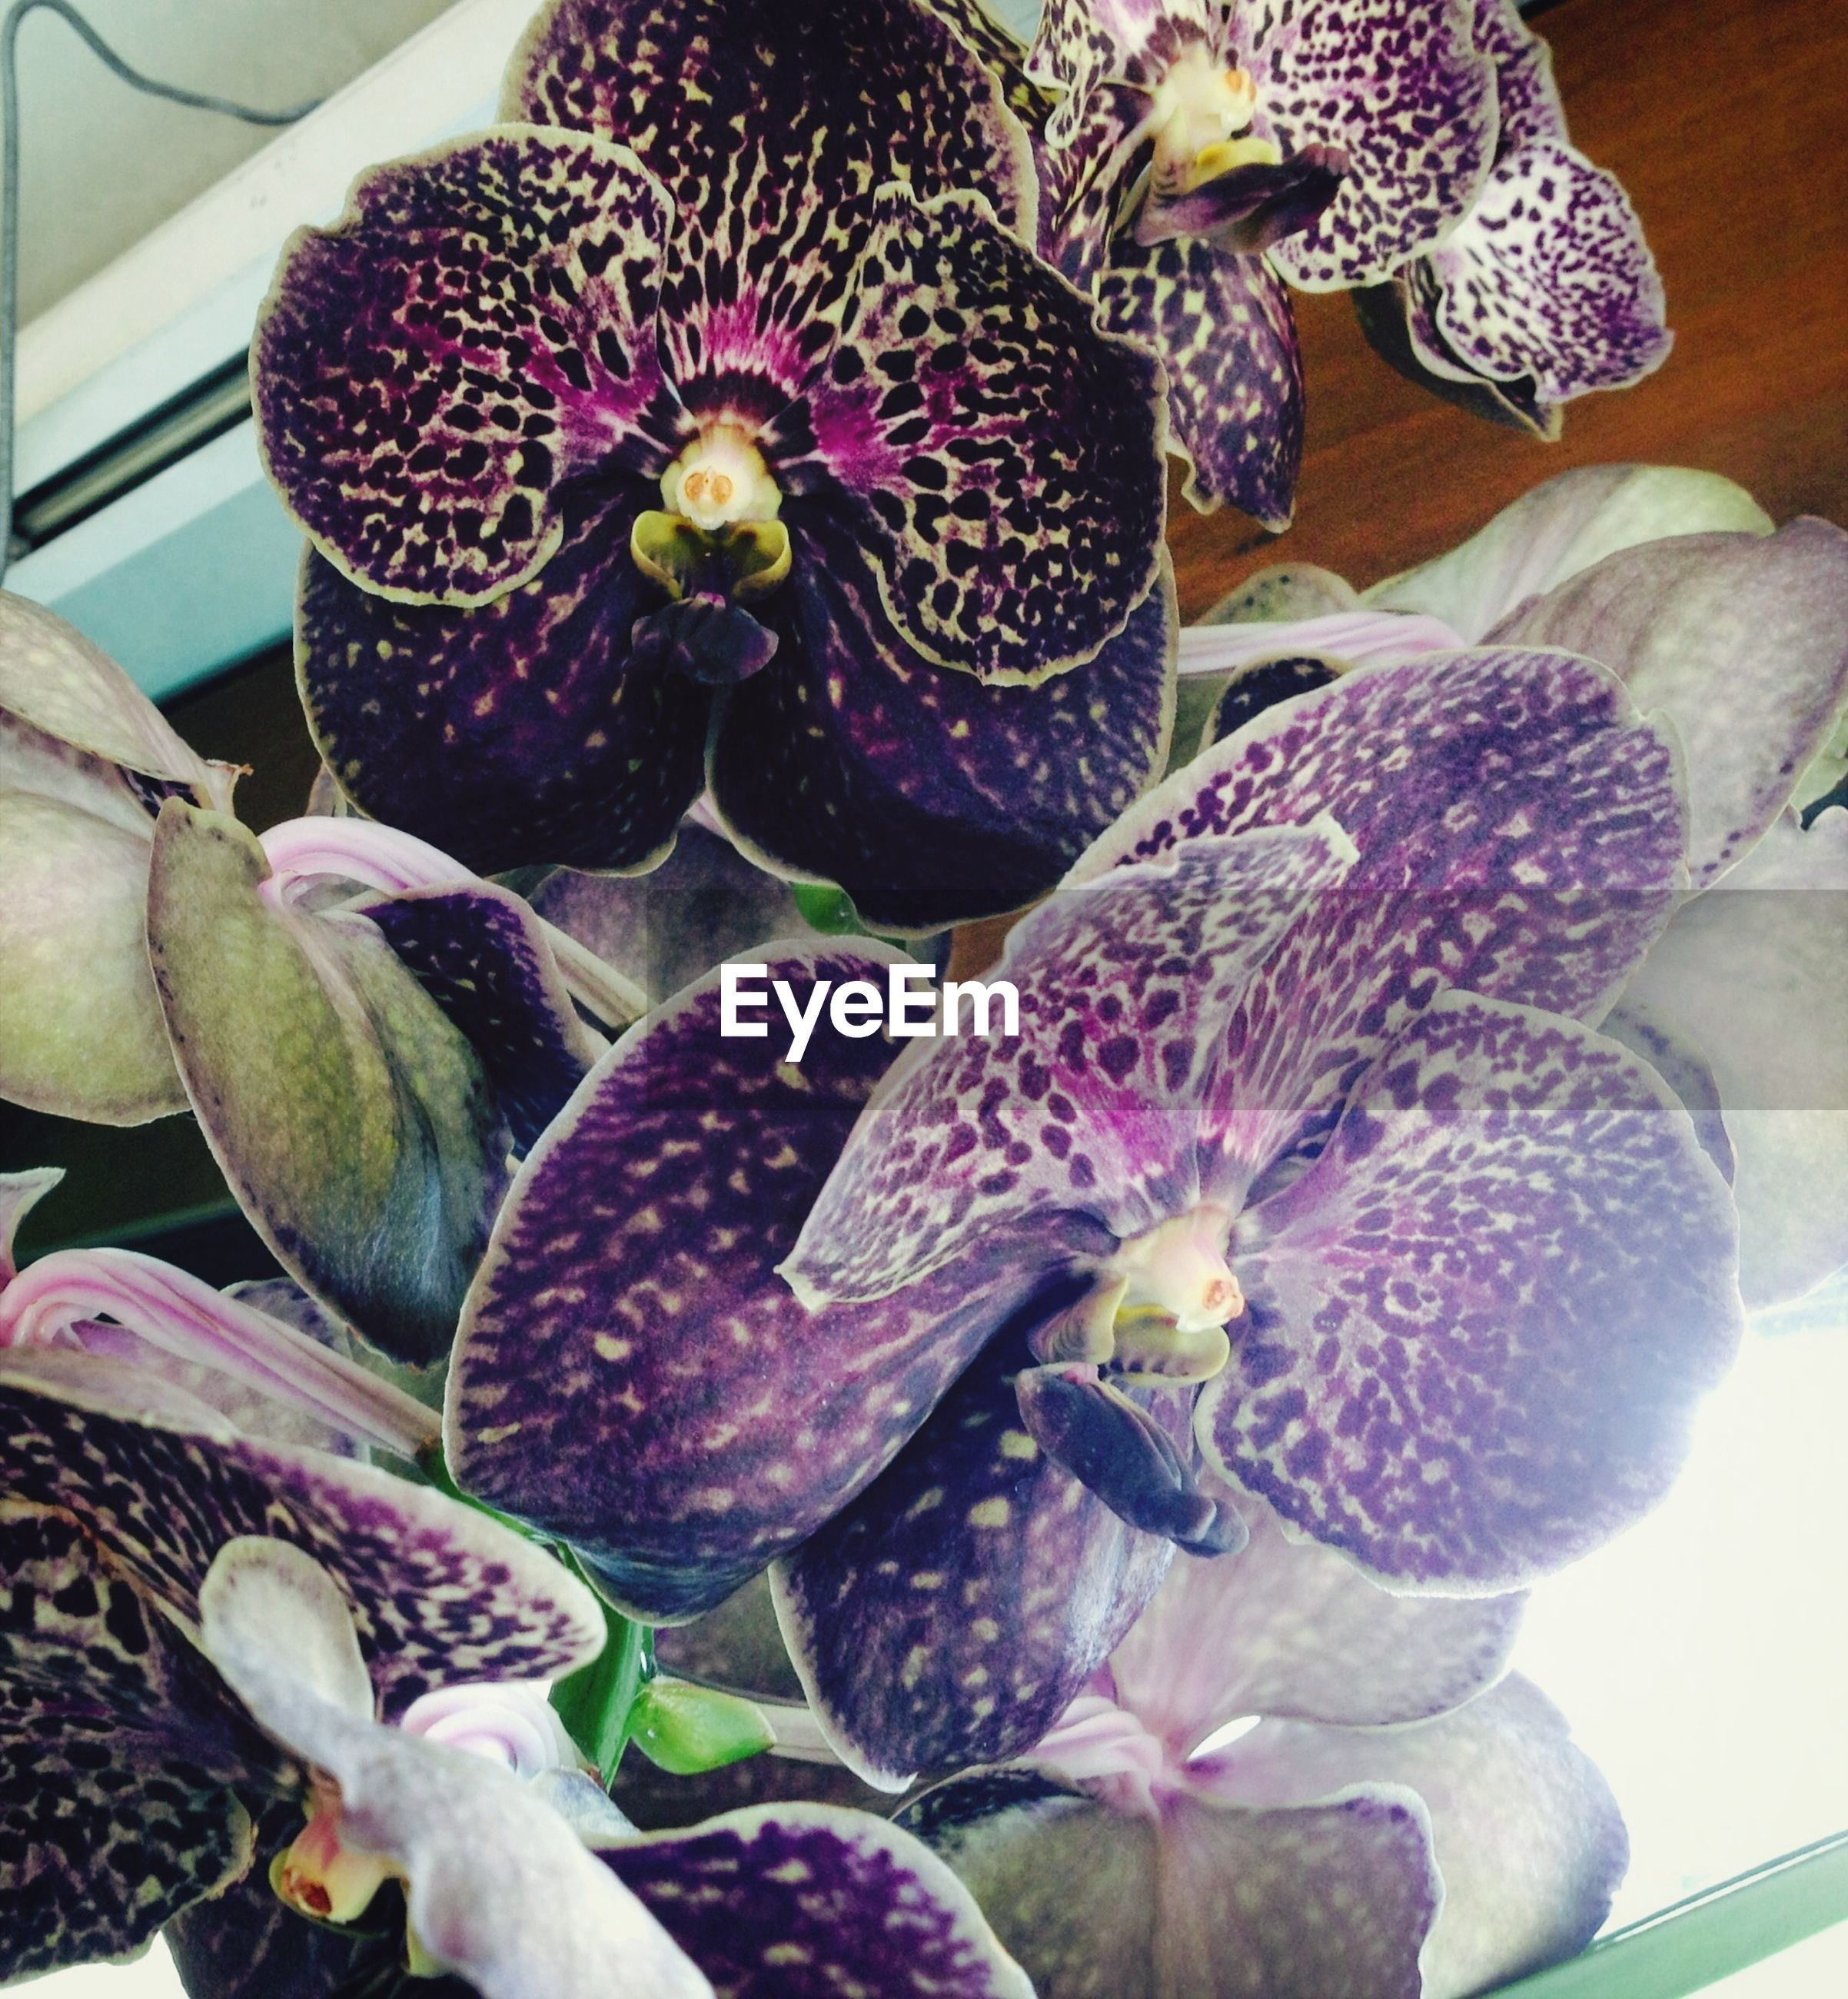 flower, petal, freshness, fragility, indoors, orchid, flower head, beauty in nature, plant, growth, nature, close-up, purple, high angle view, no people, blooming, day, leaf, natural pattern